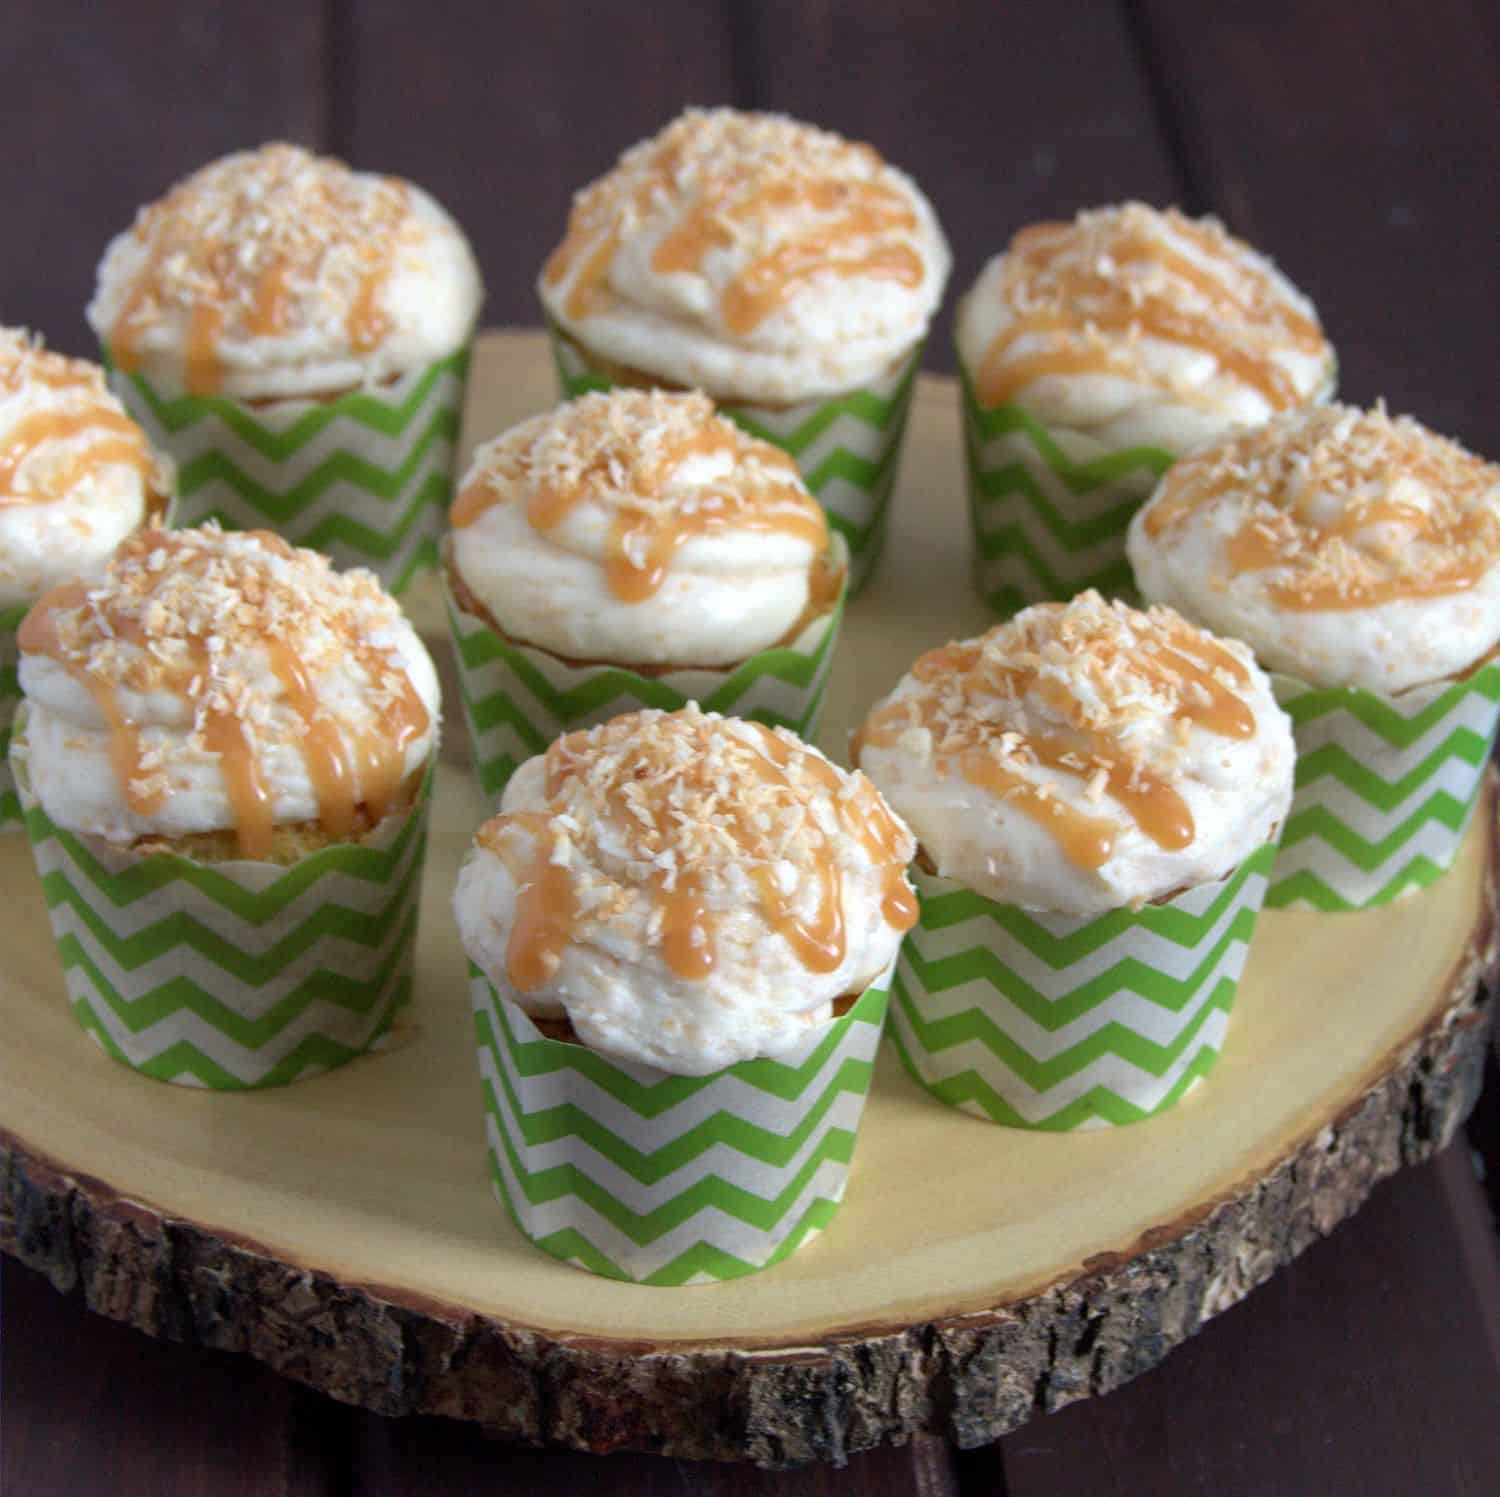 Coconut Caramel Cupcake Recipe - delicious, and not too sweet!